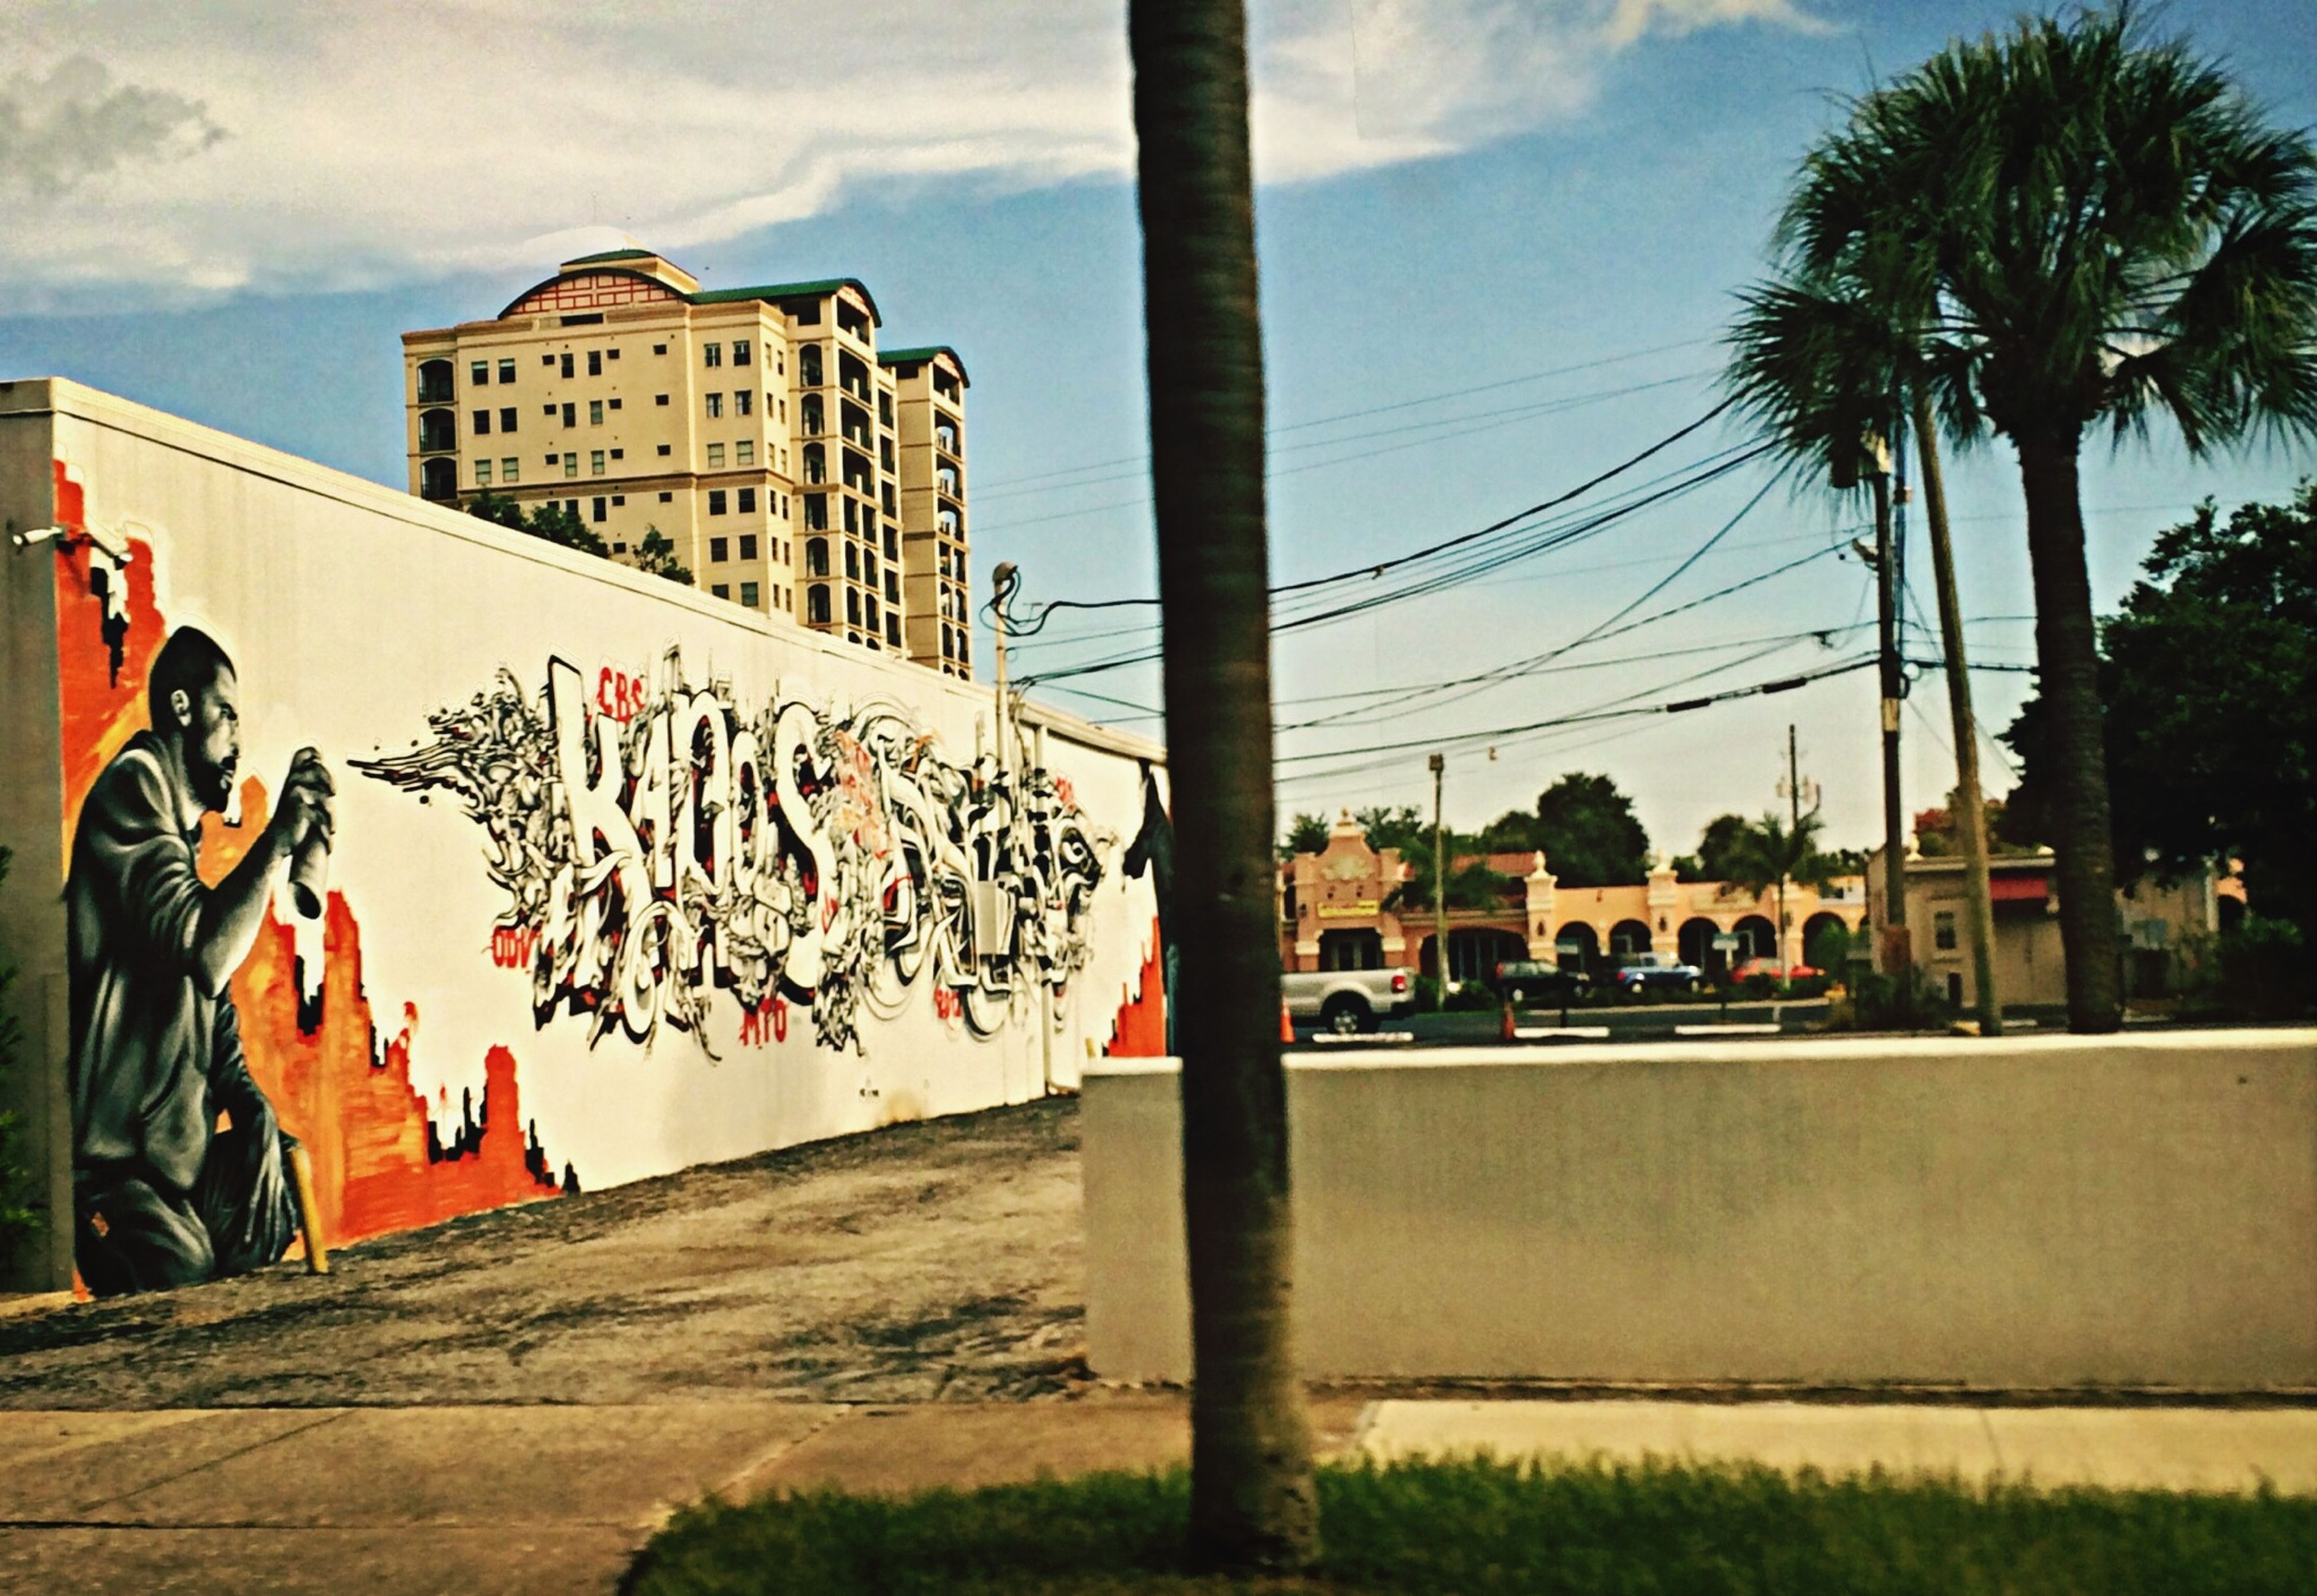 building exterior, architecture, built structure, sky, lifestyles, men, tree, palm tree, leisure activity, person, city, cloud - sky, graffiti, text, large group of people, street, day, cloud, outdoors